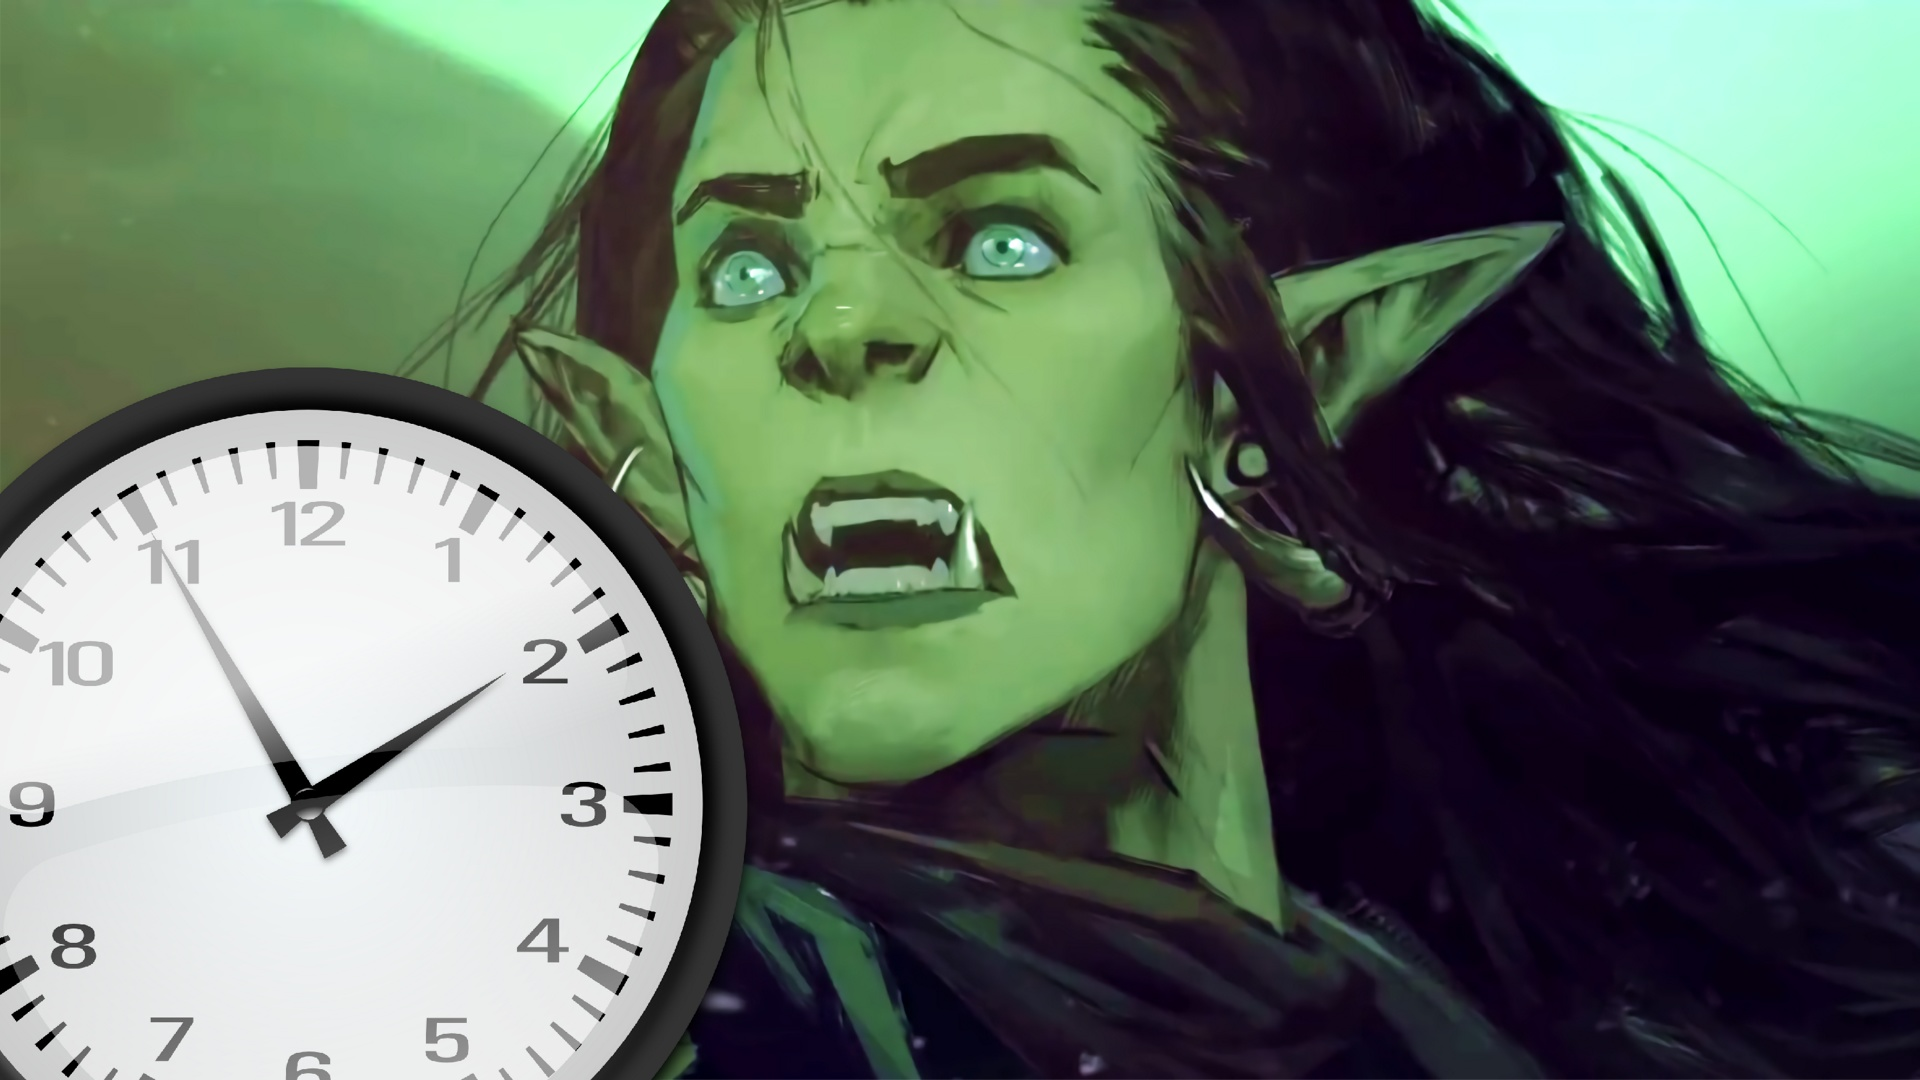 WoW Shadowlands Pre-Patch 9.0.1: Server downtime & maintenance work